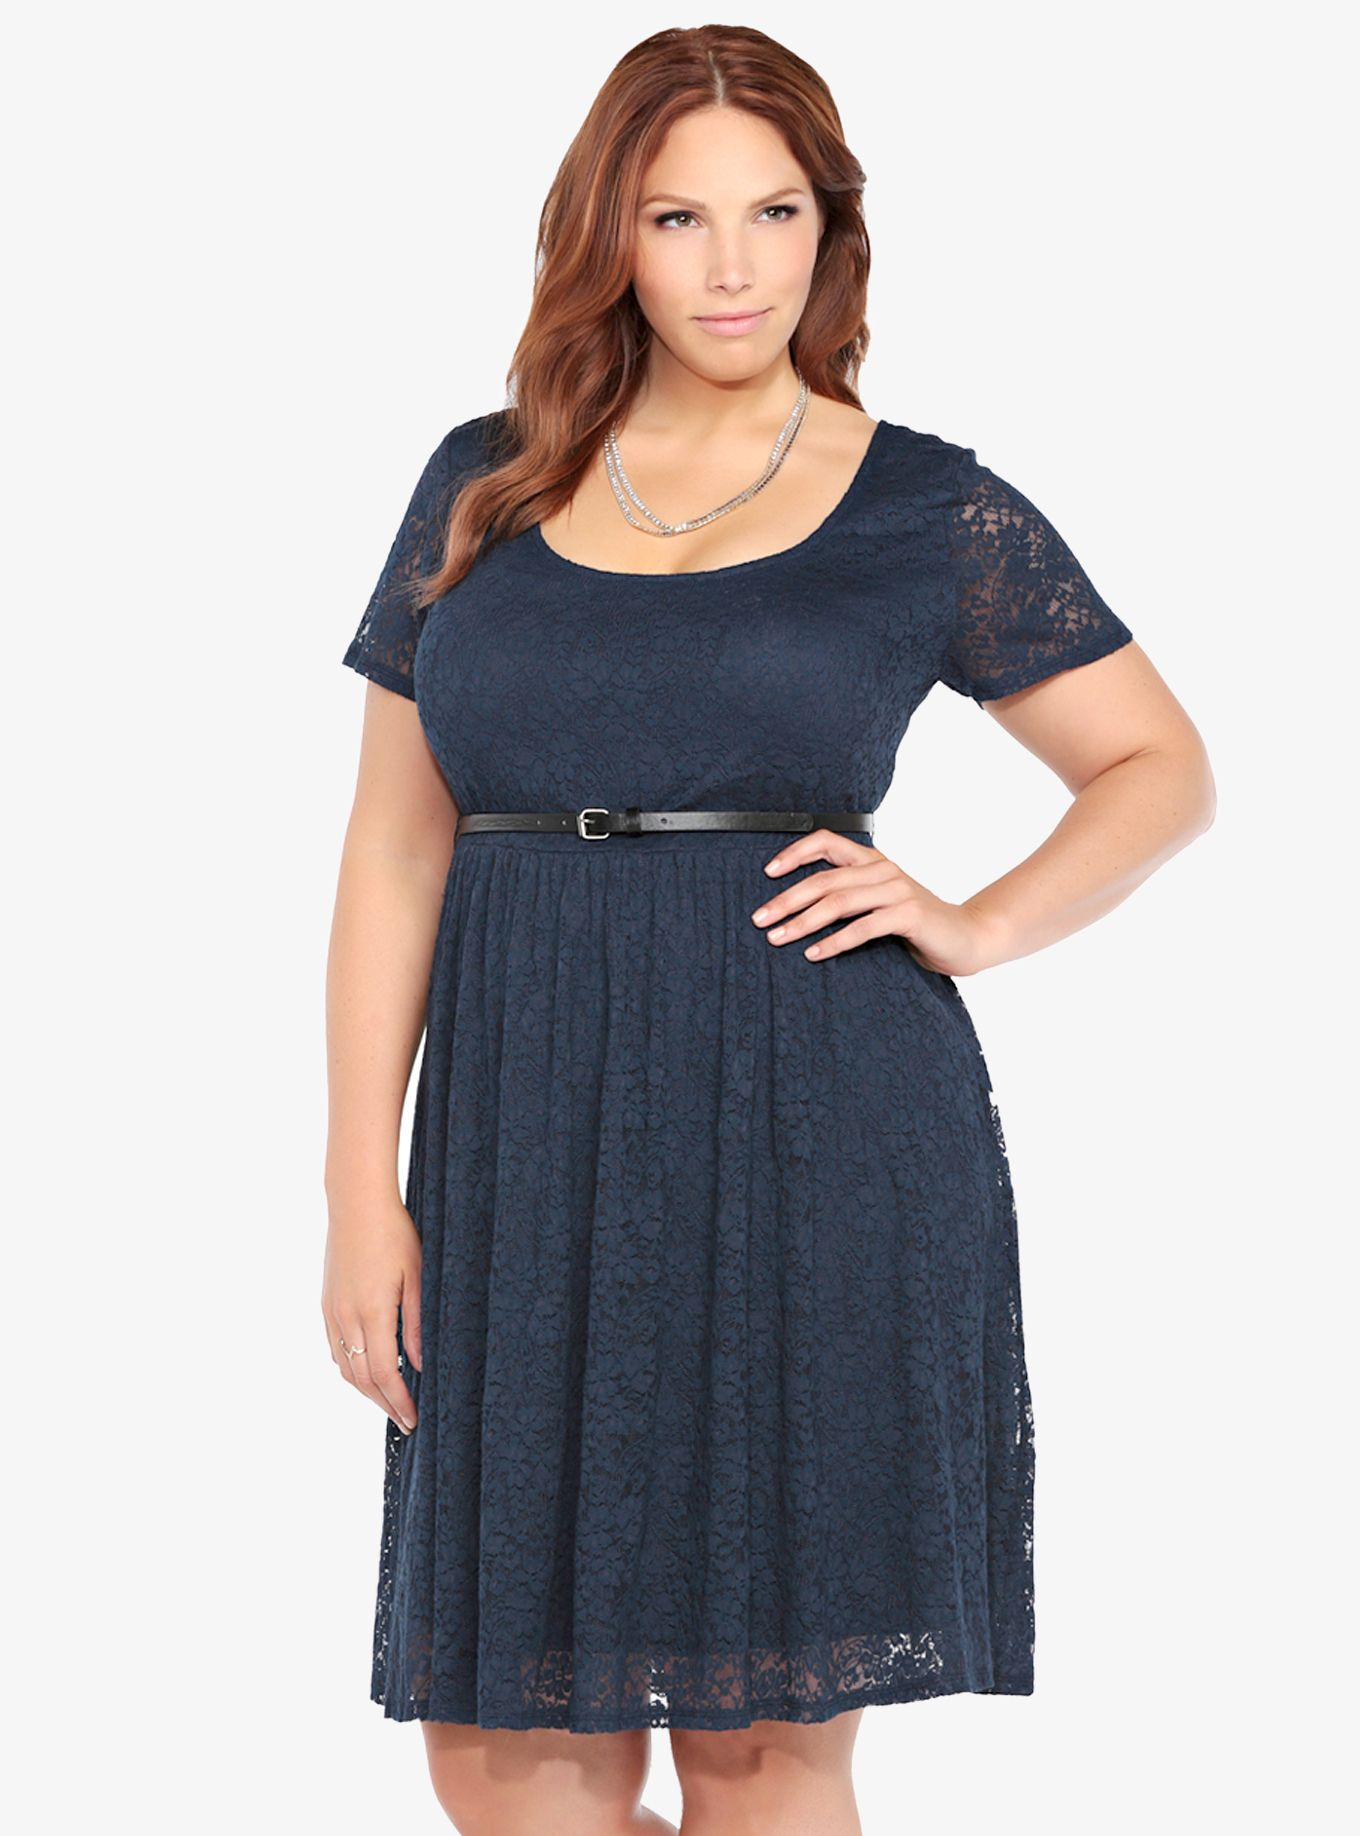 b9cfbbc0674 Size 3 and 4 No Belt. Belted Floral Lace Skater Dress